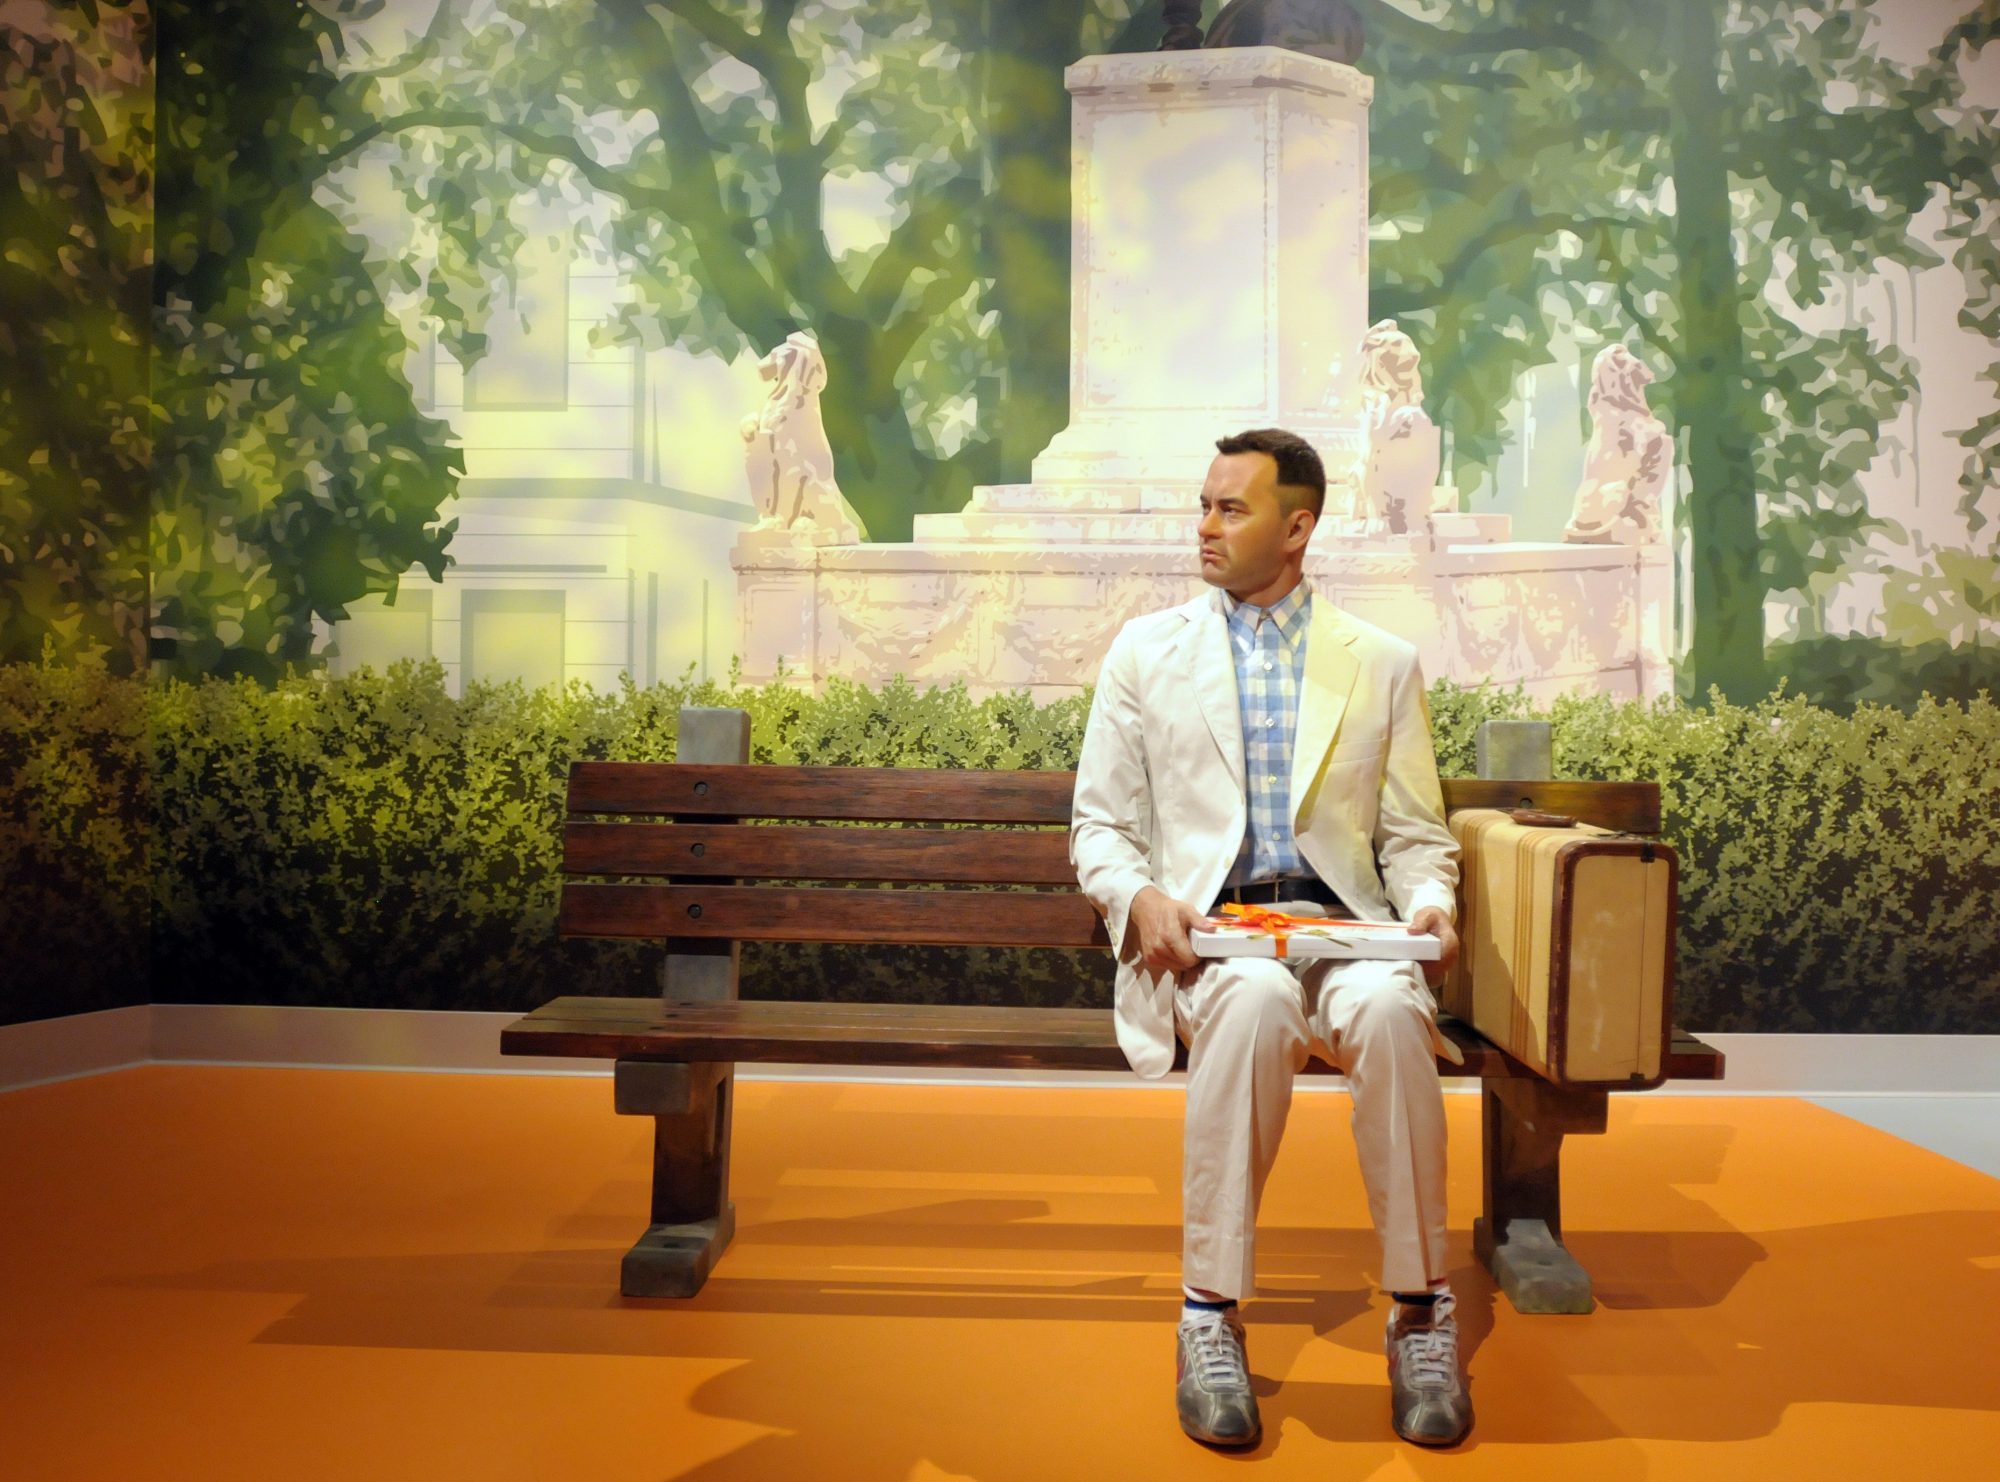 'Forrest Gump' Returns to Theaters Next Month for 25th Anniversary